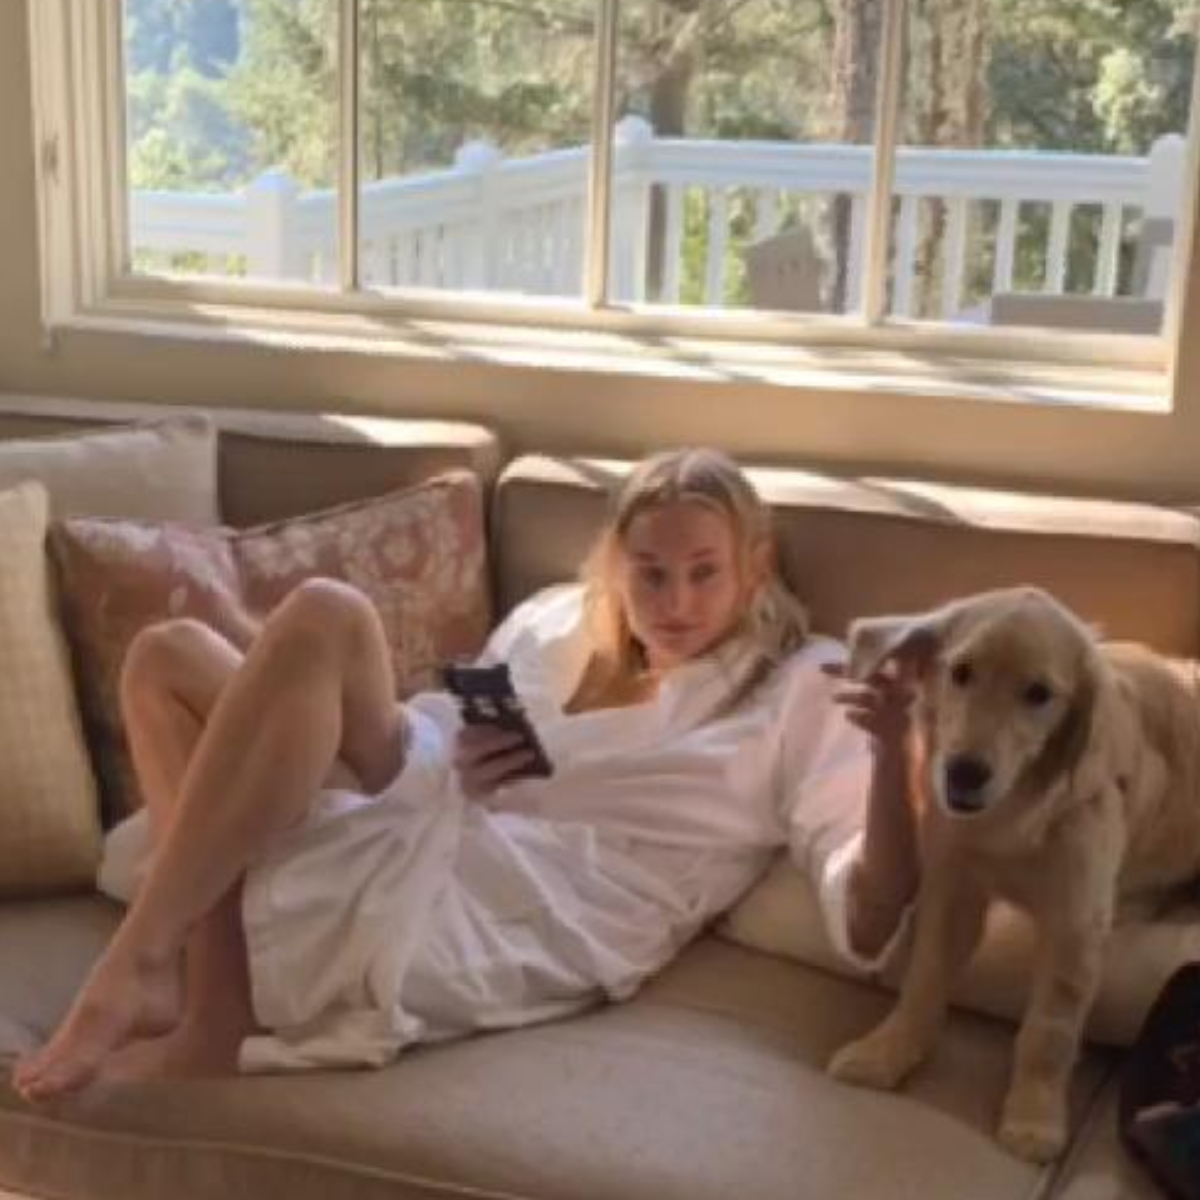 Game of Thrones star Sophie Turner soaks up the sun in her bathrobe as she pets her dog; Check it out